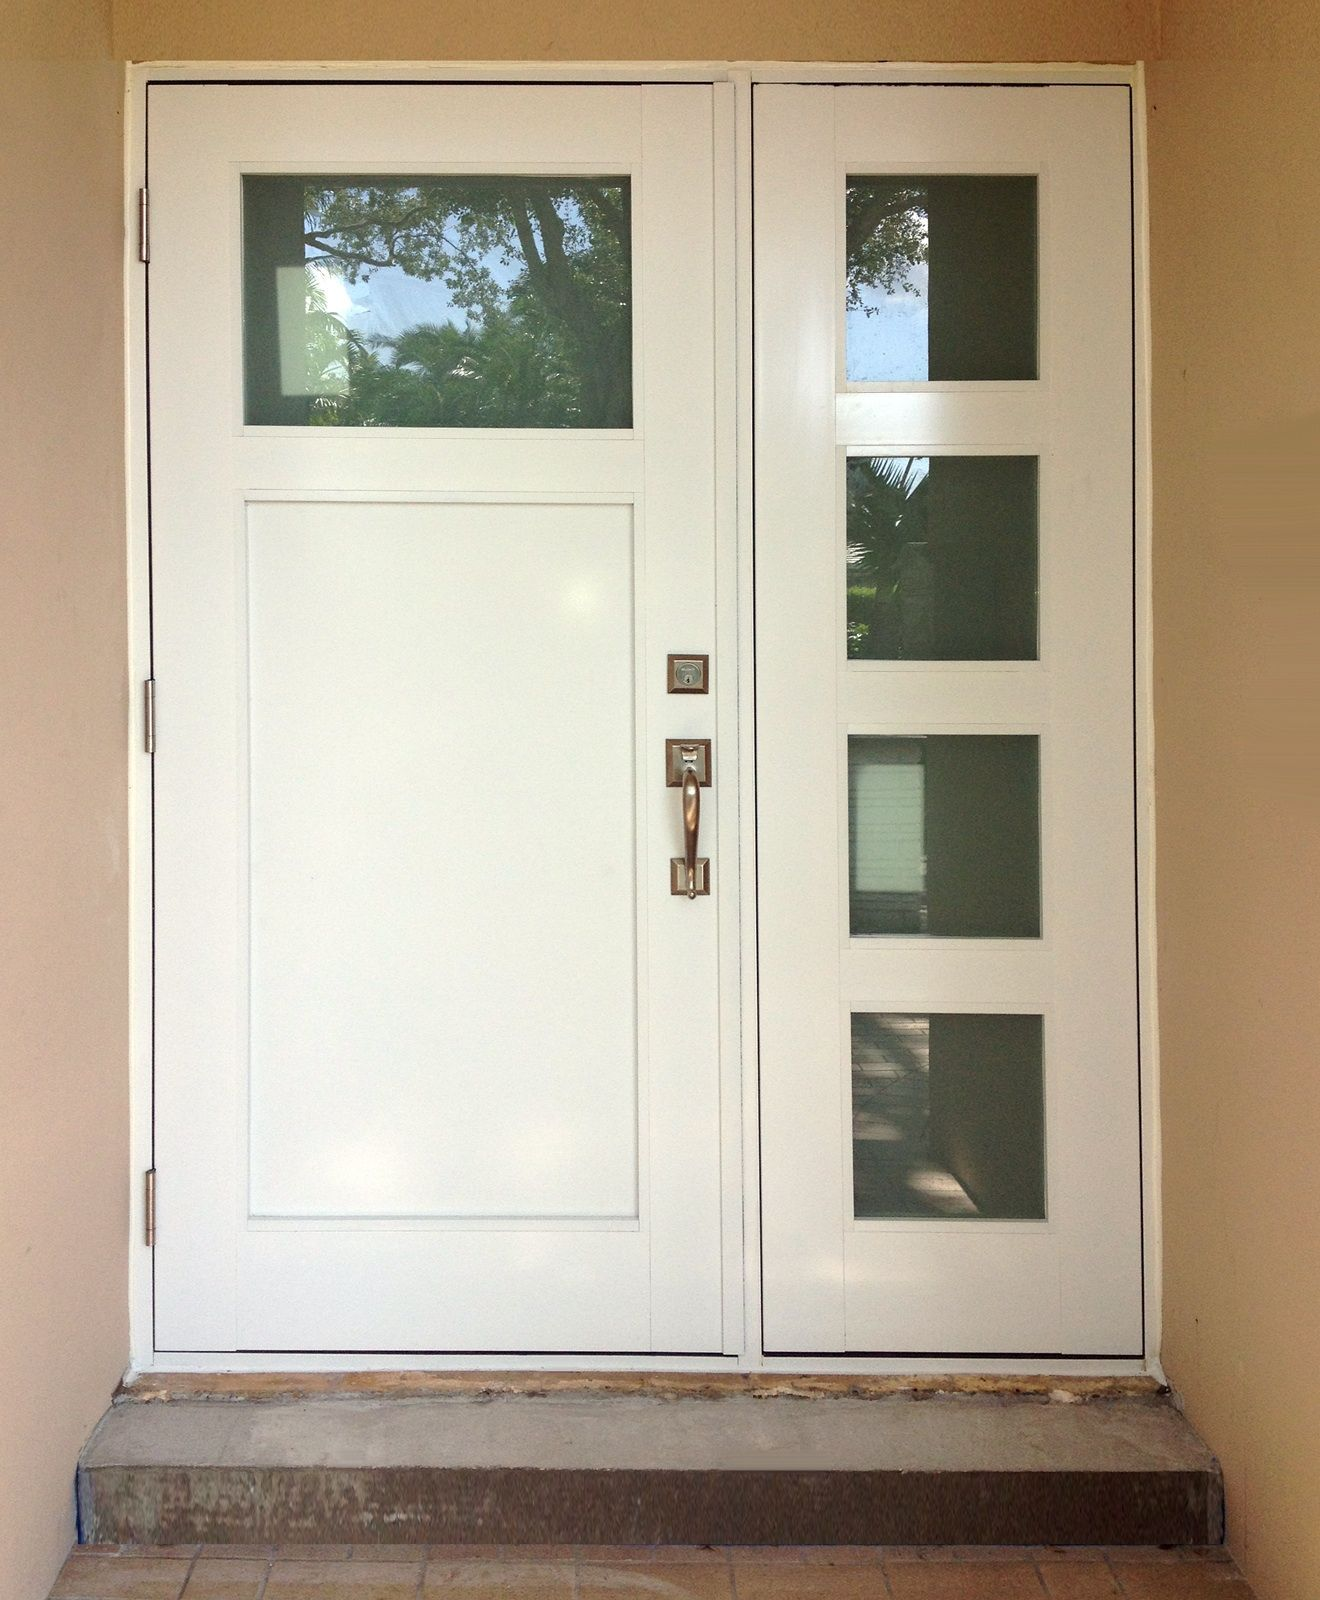 Impact Resistant Entrance Door With Sidelite Installed In Miami